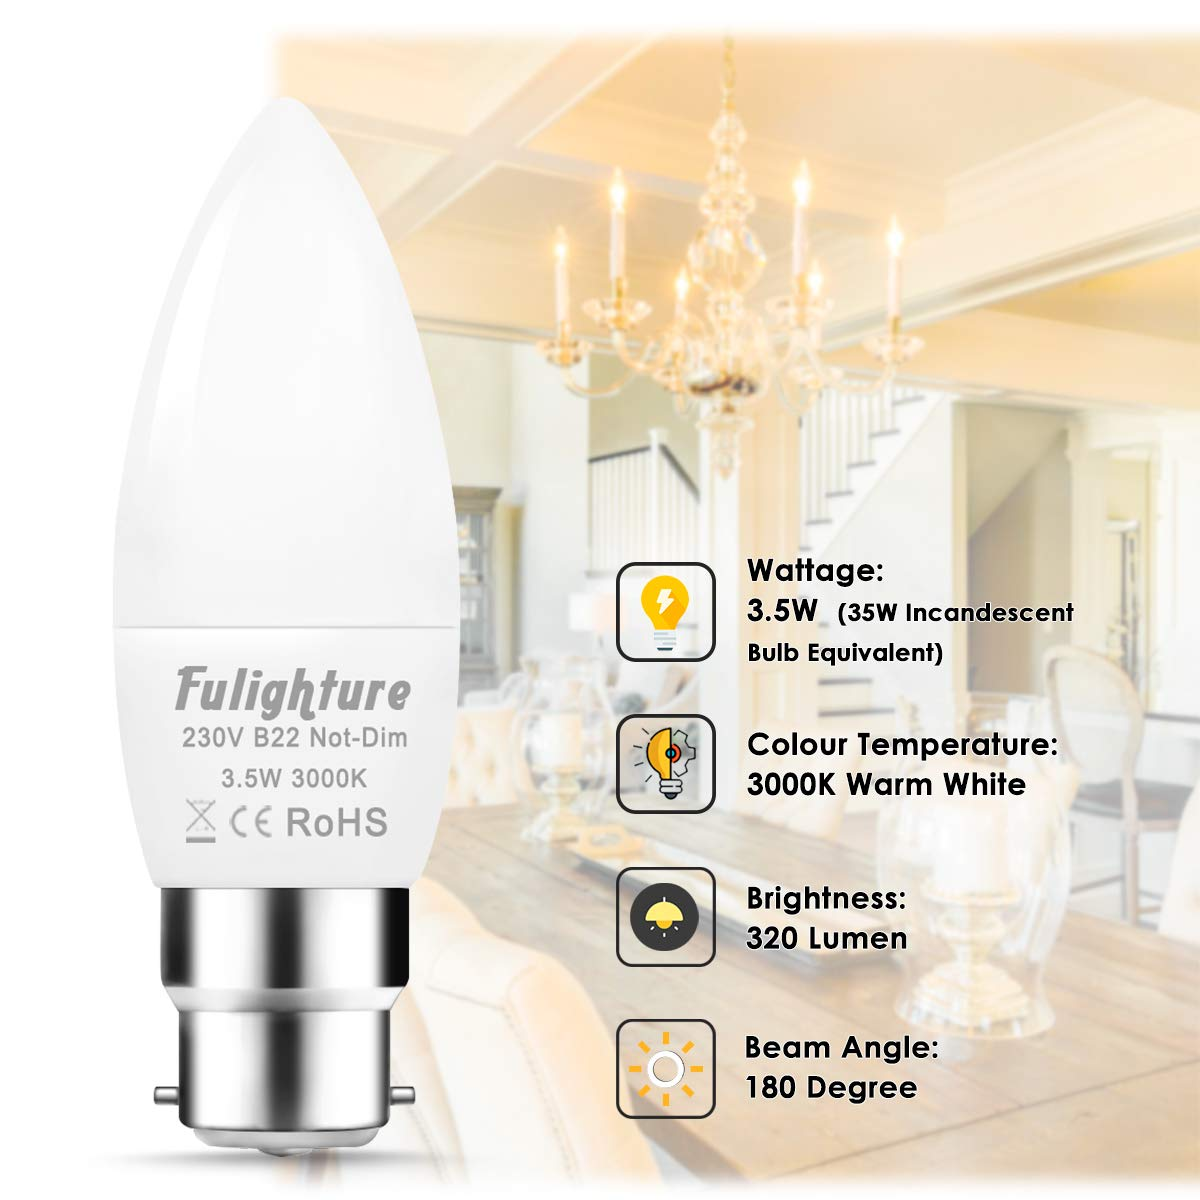 for Bedroom 35W Incandescent Bulb Equivalent 3000K Warm White B22 Bayonet Cap Candle Bulbs Fulighture 3.5W Frosted Small LED Light Bulbs Bathroom Kitchen Non-Dimmable Pack of 6 Living Room